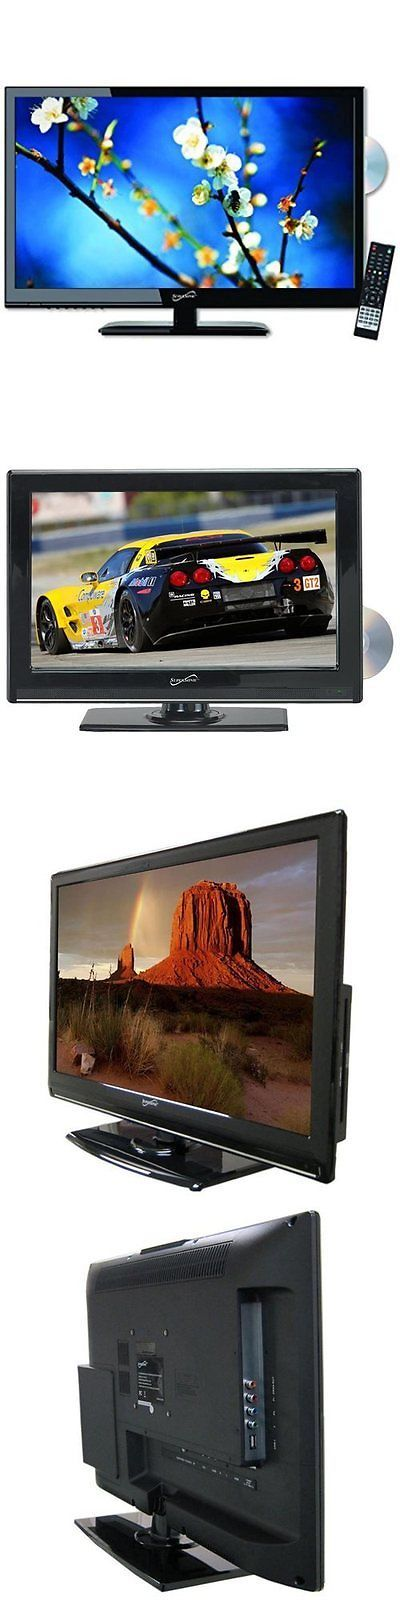 Televisions: Supersonic 24-Inch 1080P Led Widescreen Ac/Dc Hdtv W/ Built-In Dvd Player BUY IT NOW ONLY: $174.36